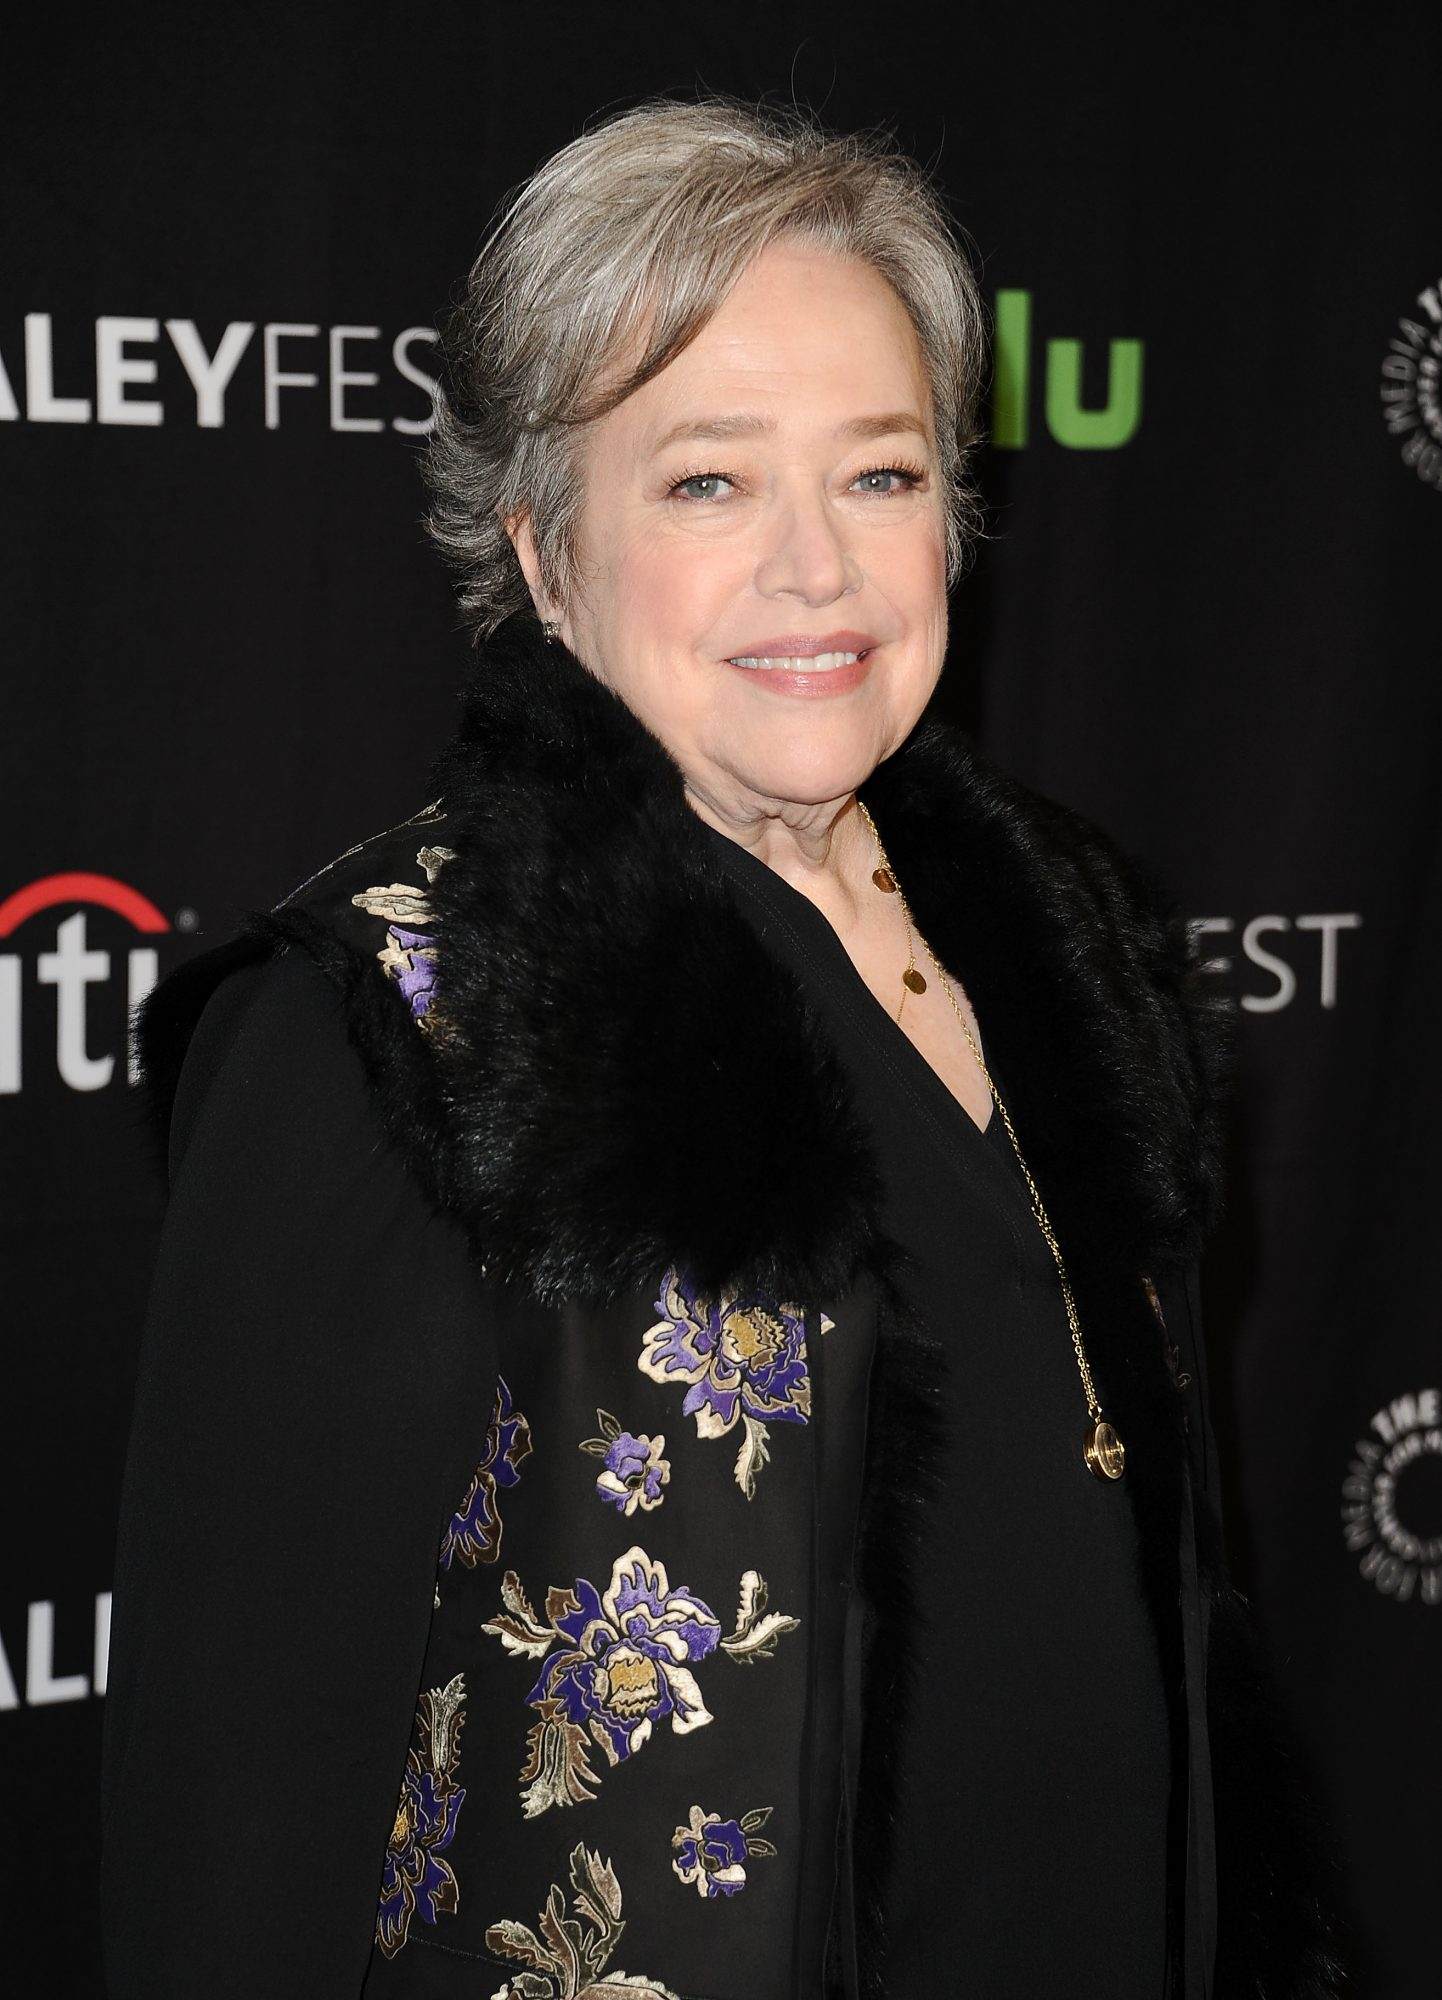 Kathy Bates (diagnosed 2012 at age 64)